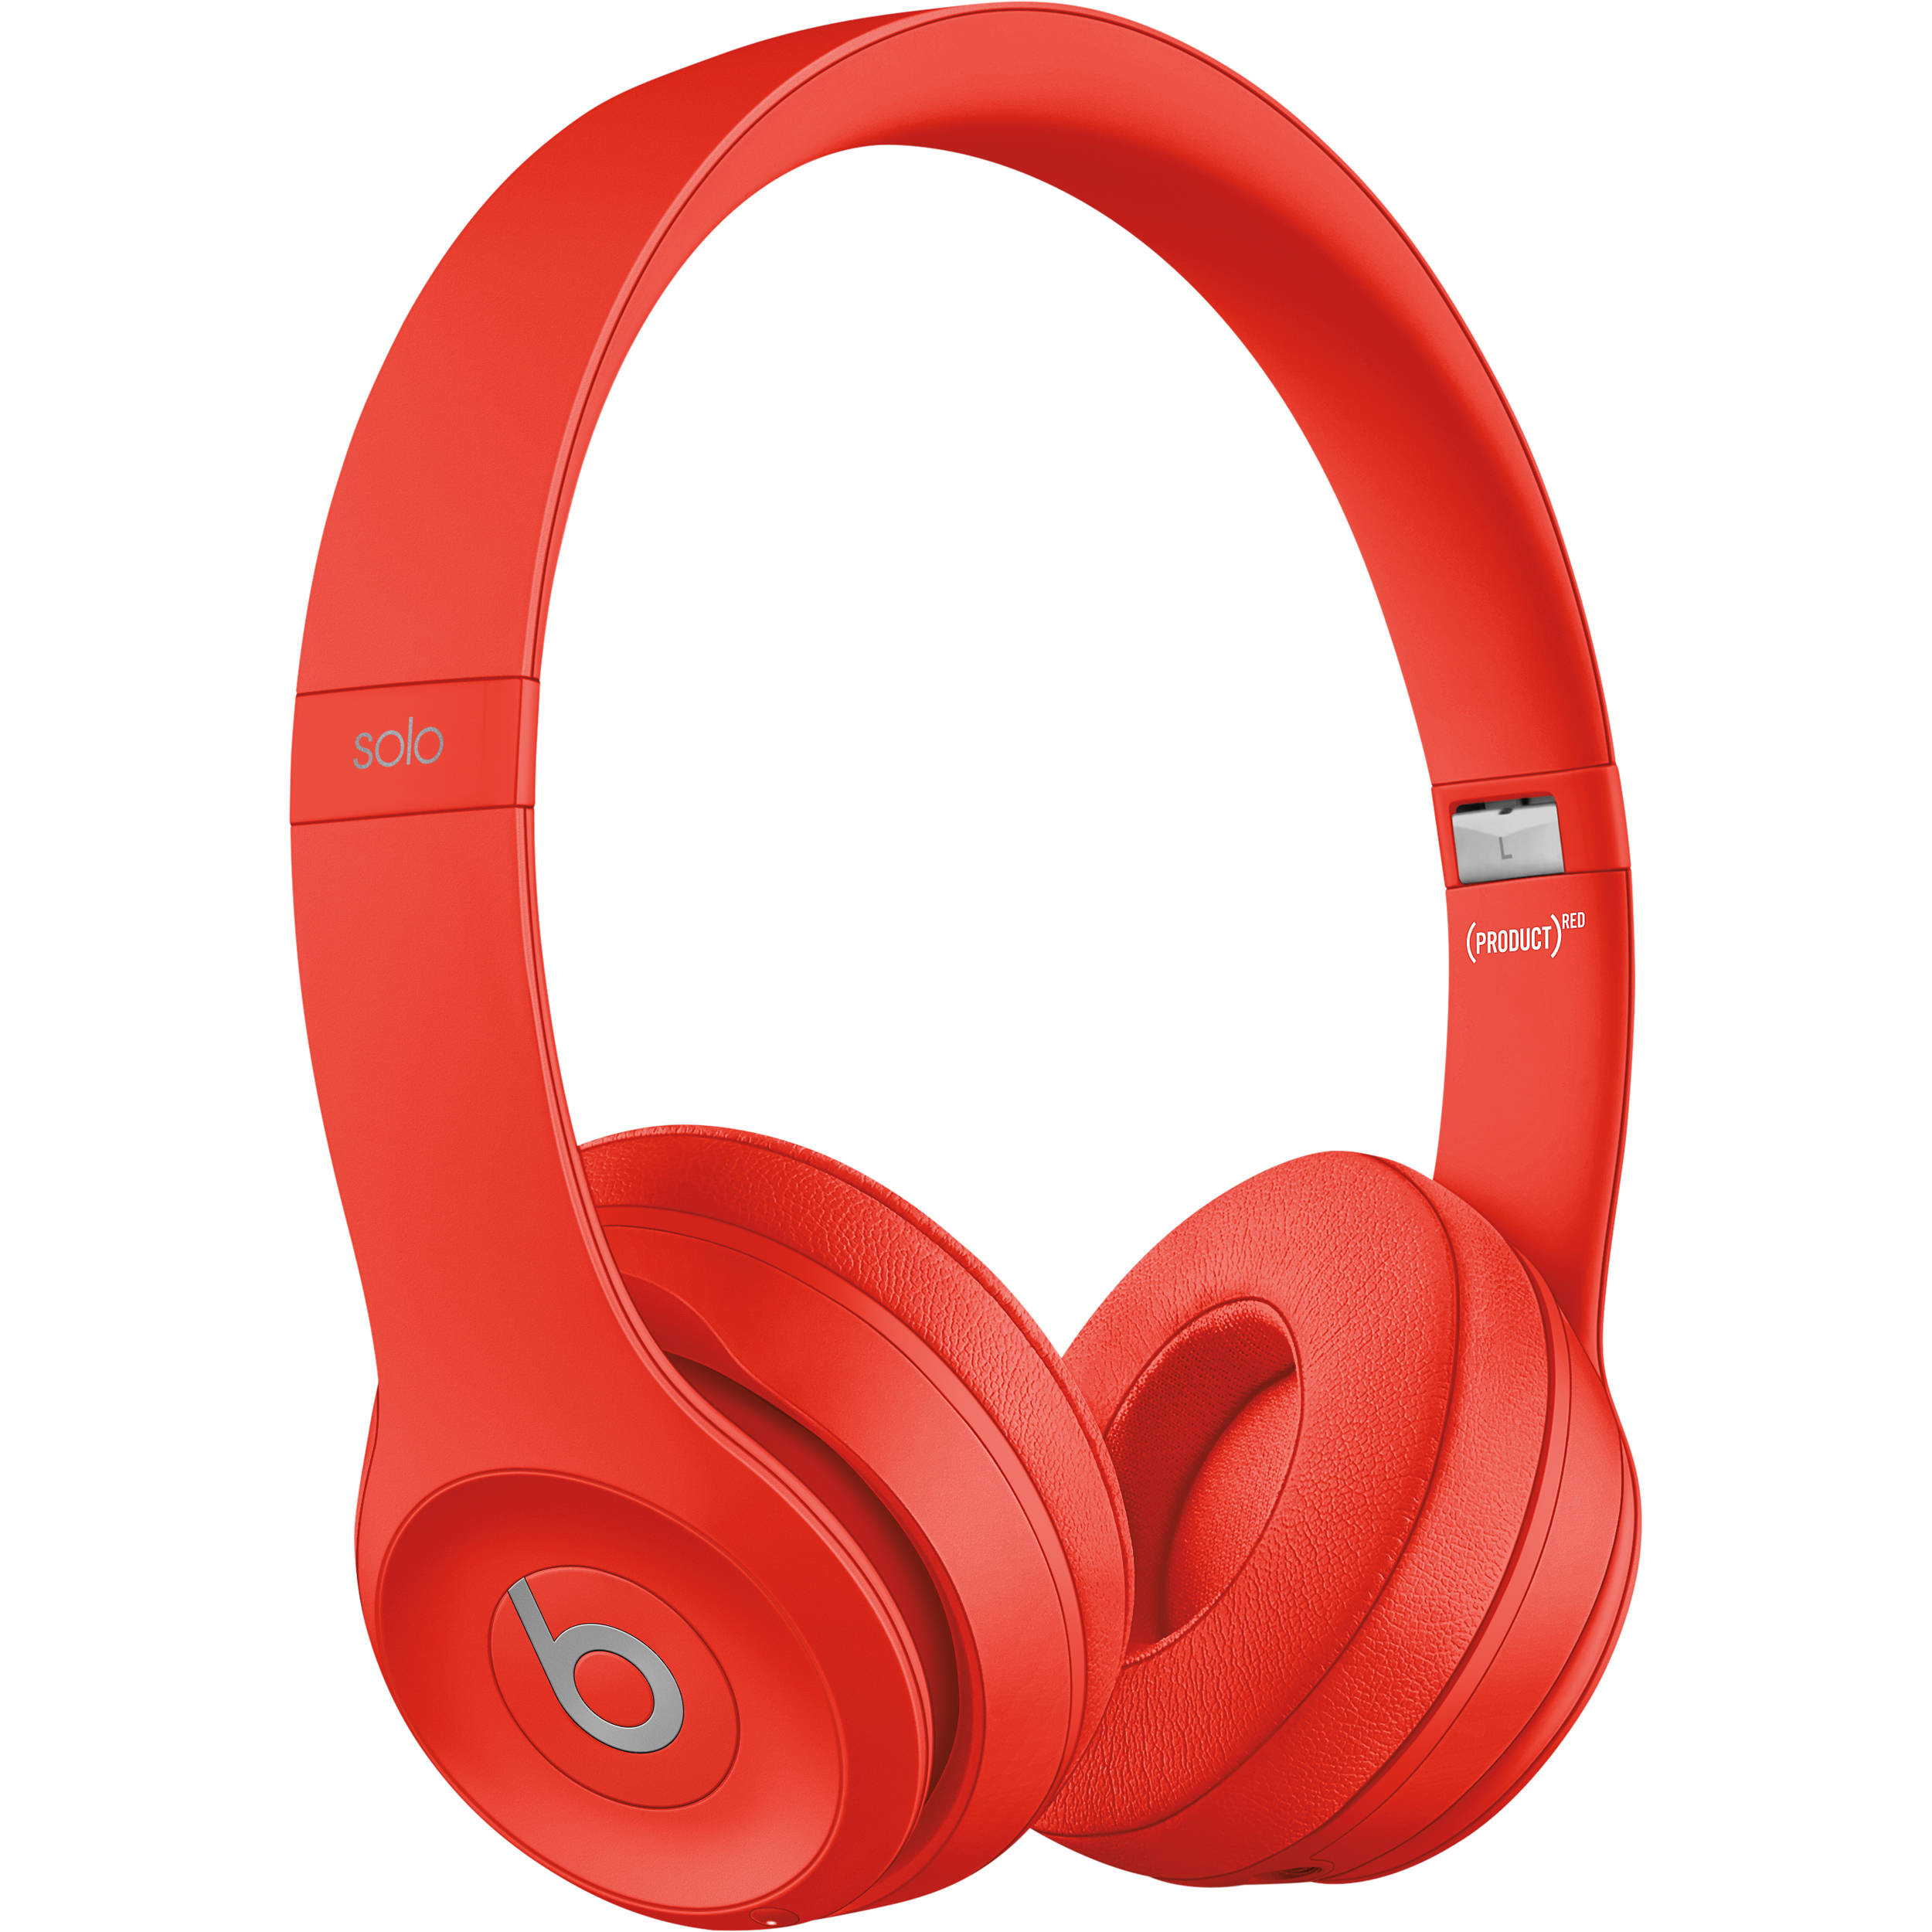 beats_by_dr_dre_mp162ll_a_solo3_wireless_on_ear_headphones_1324189.jpg